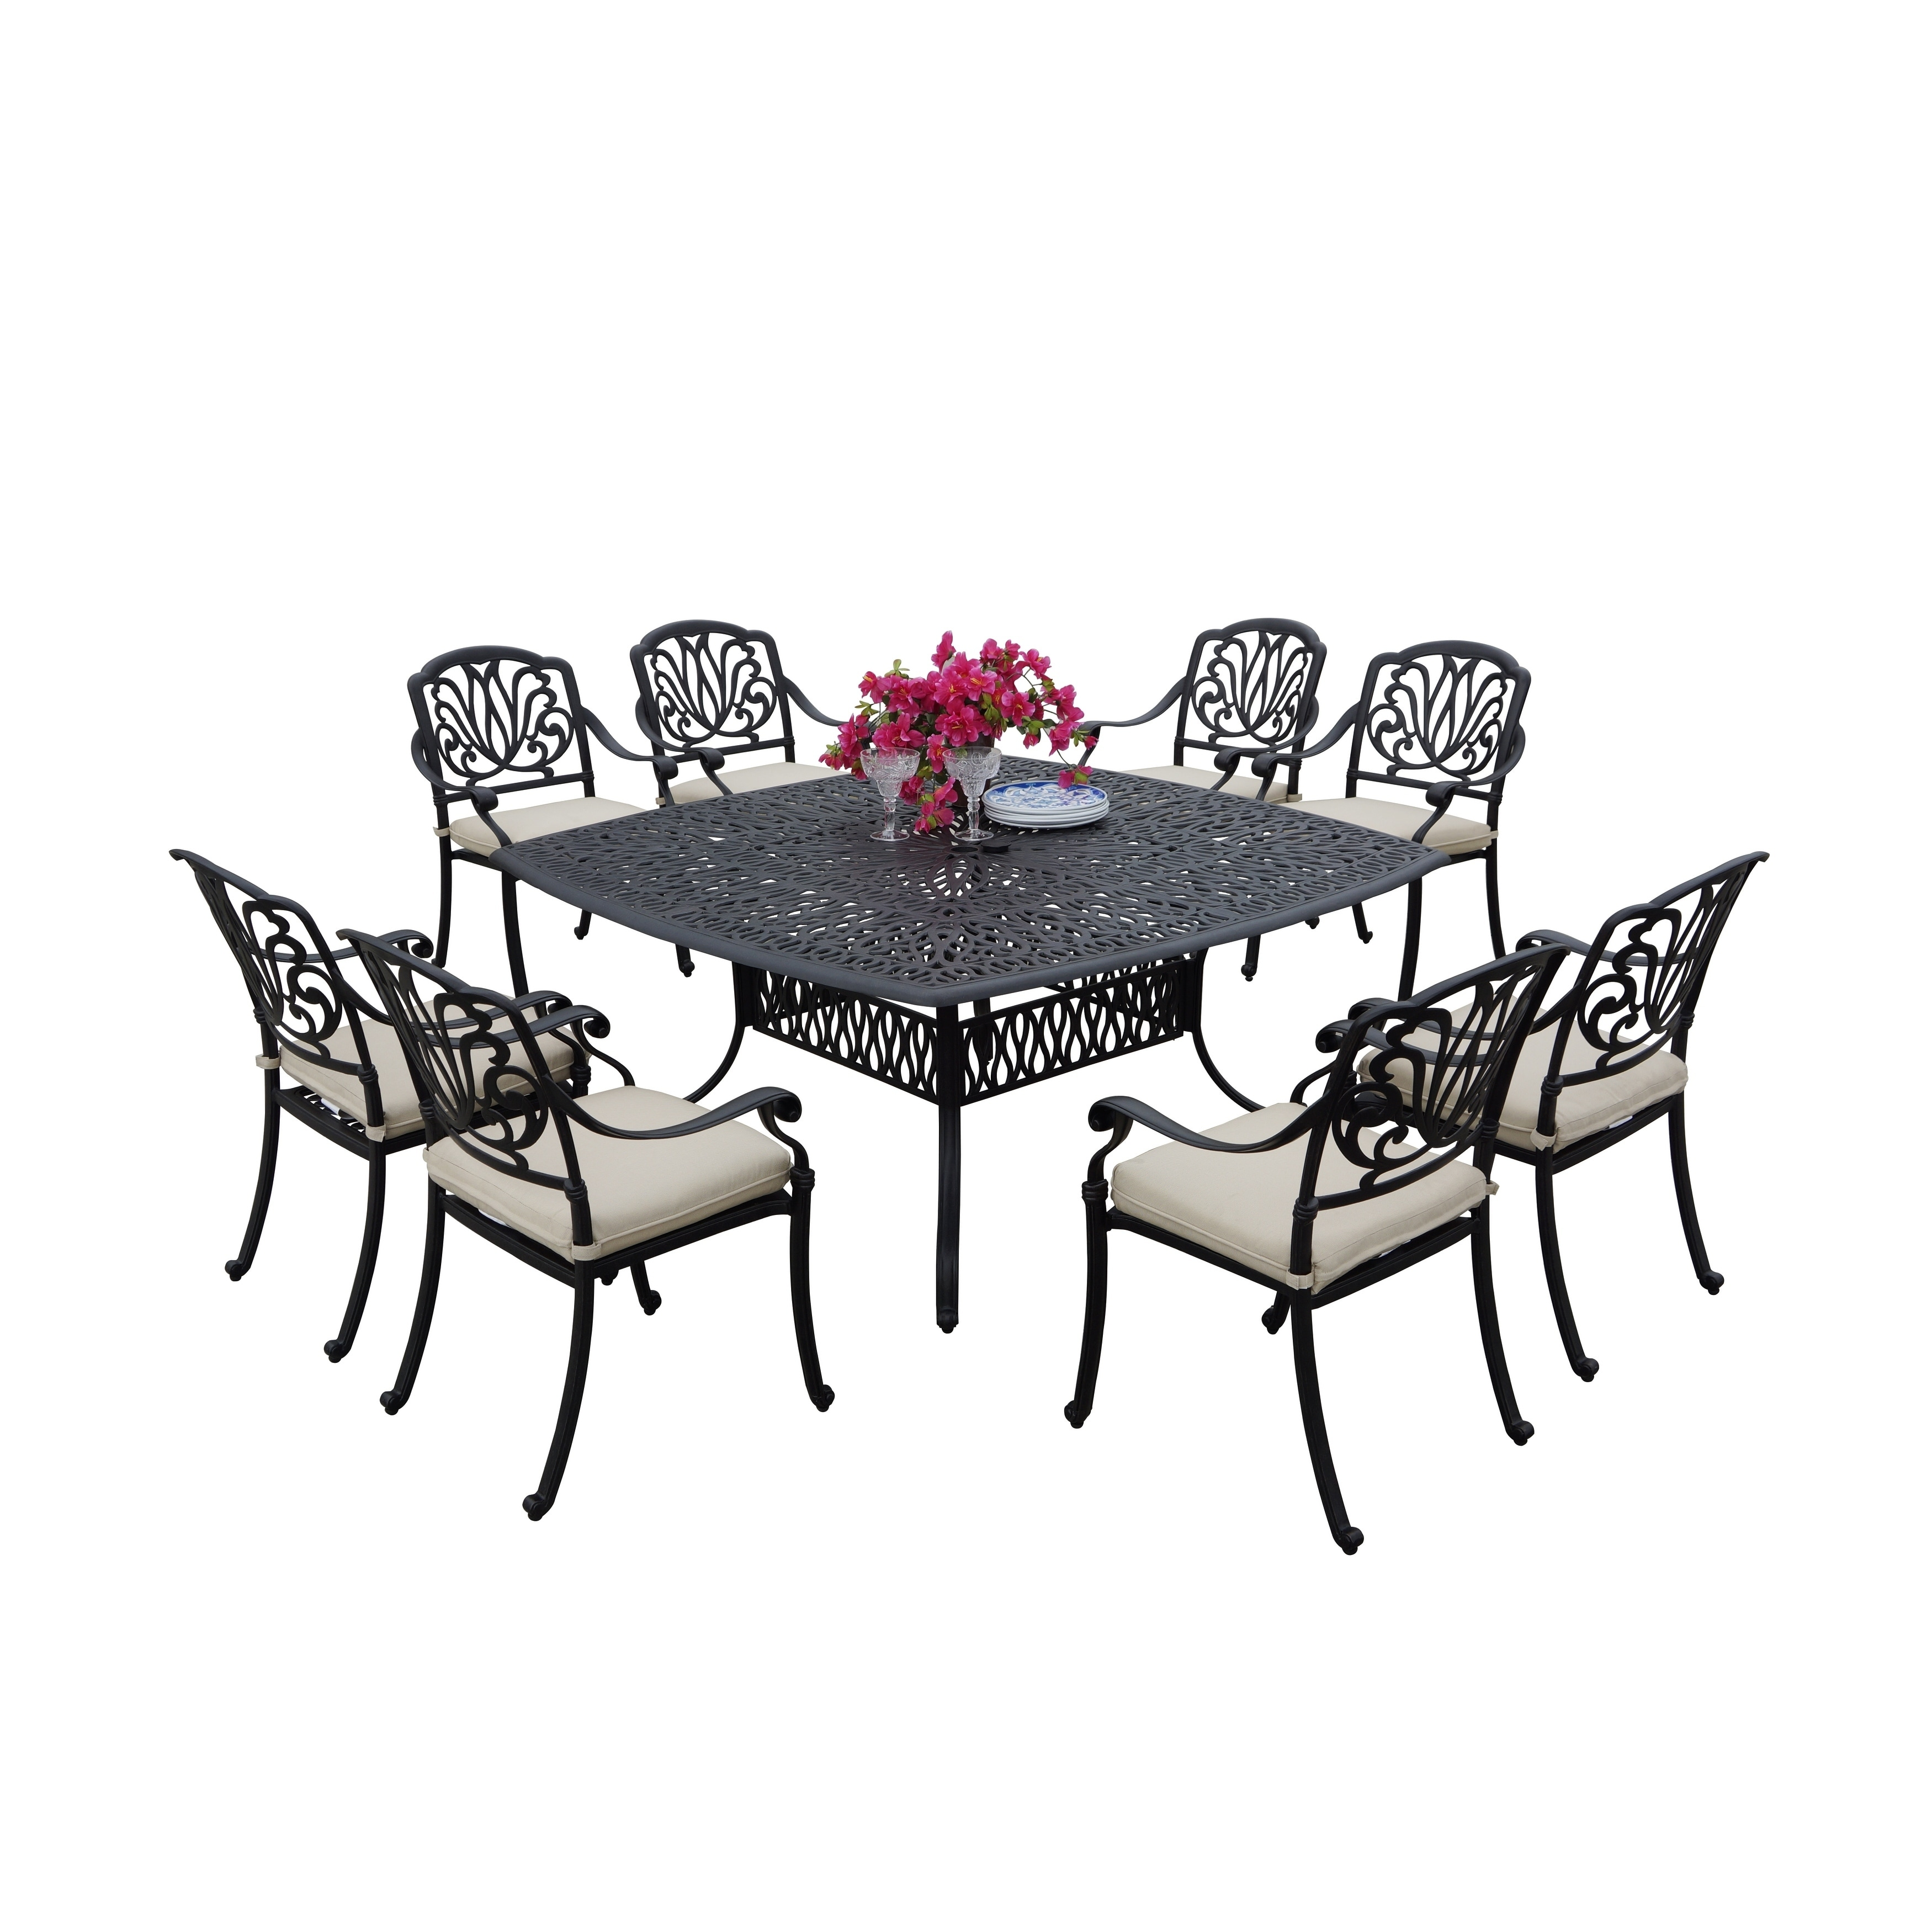 Sierra Madre Cast Aluminum 9 Piece Square Patio Dining Set Antique Bronze Free Shipping Today 19887897